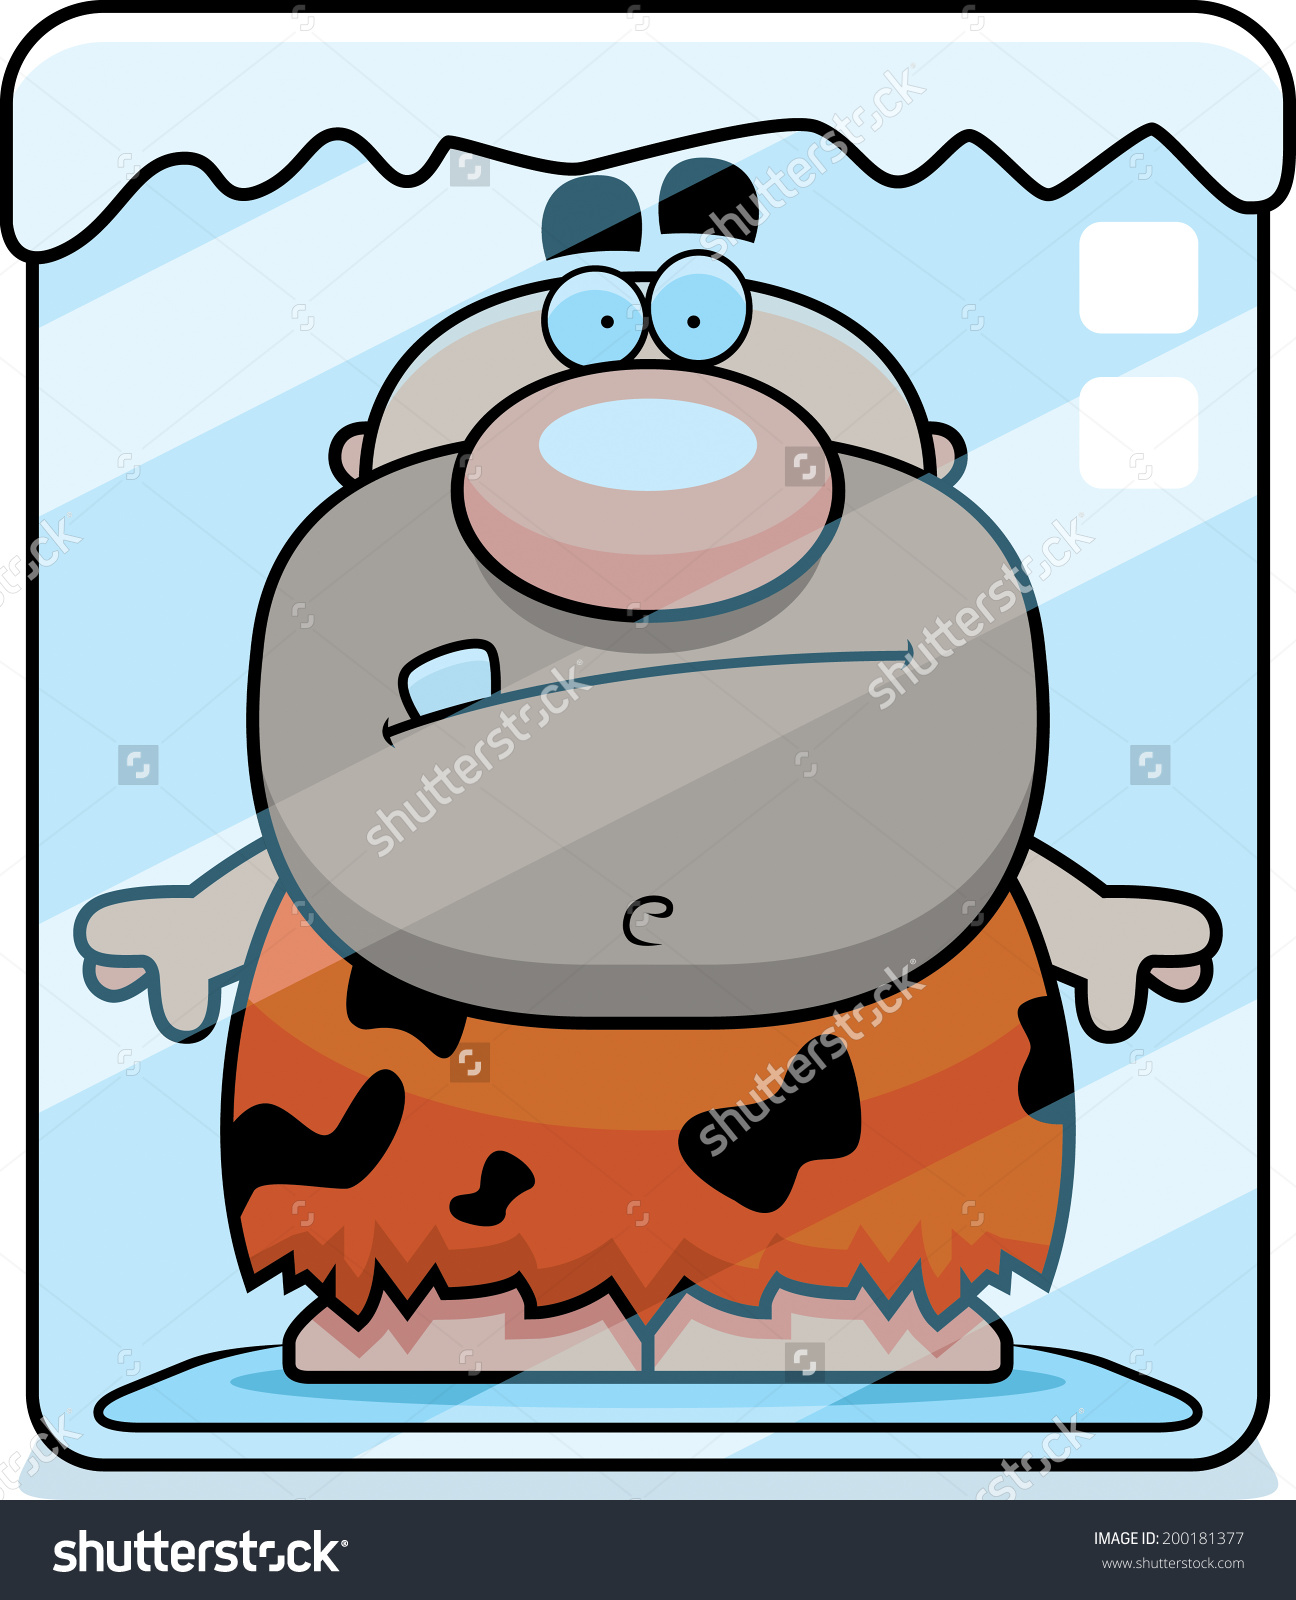 Clipart character in a block of ice vector transparent download Cartoon Caveman Frozen Block Ice Stock Vector 200181377 - Shutterstock vector transparent download